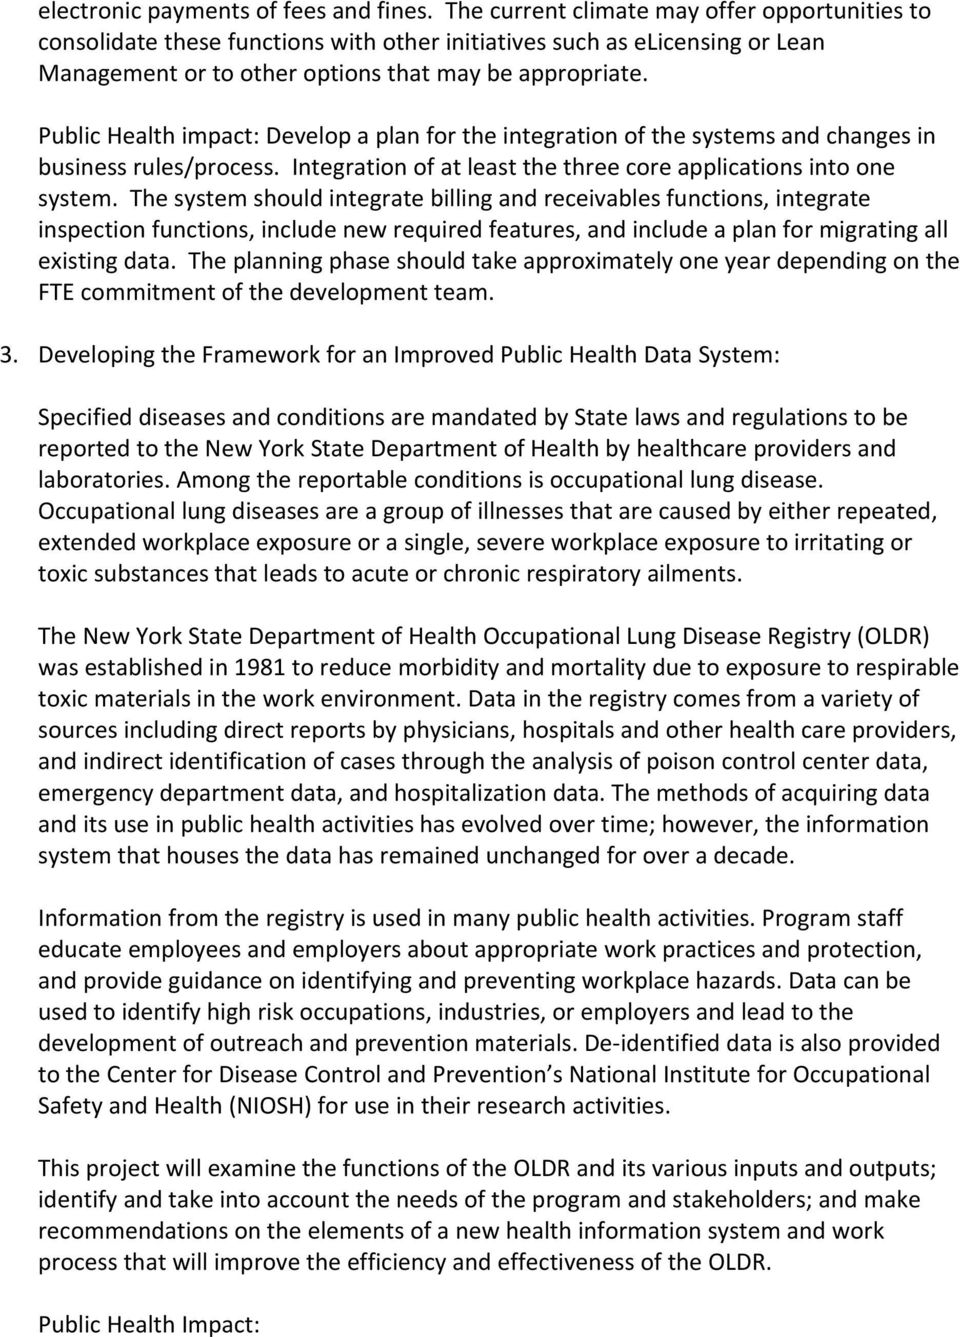 Public Health impact: Develop a plan for the integration of the systems and changes in business rules/process. Integration of at least the three core applications into one system.